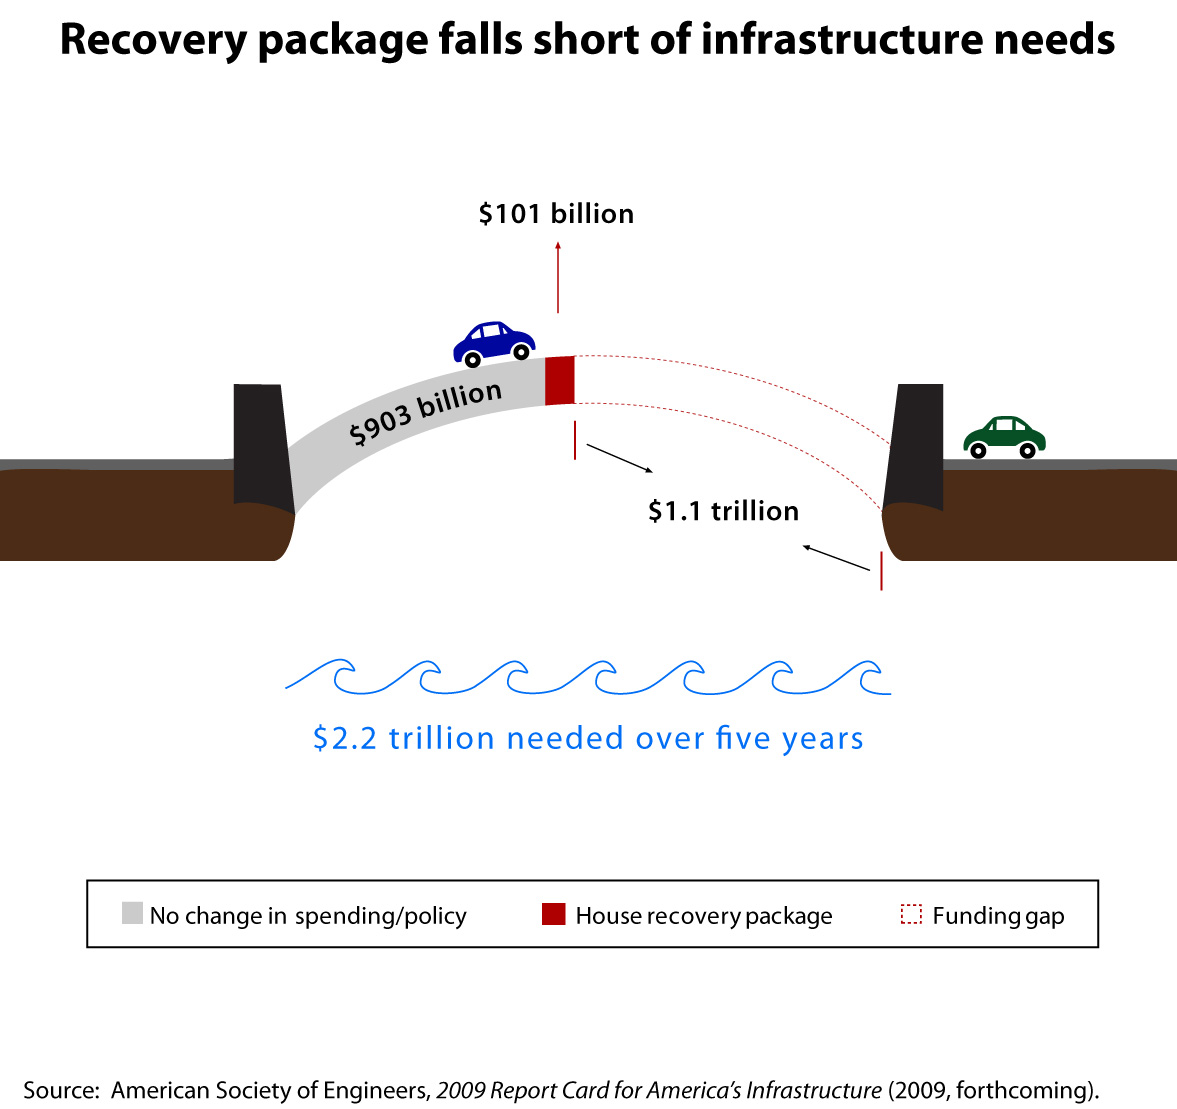 Recovery package falls short of infrastructure needs